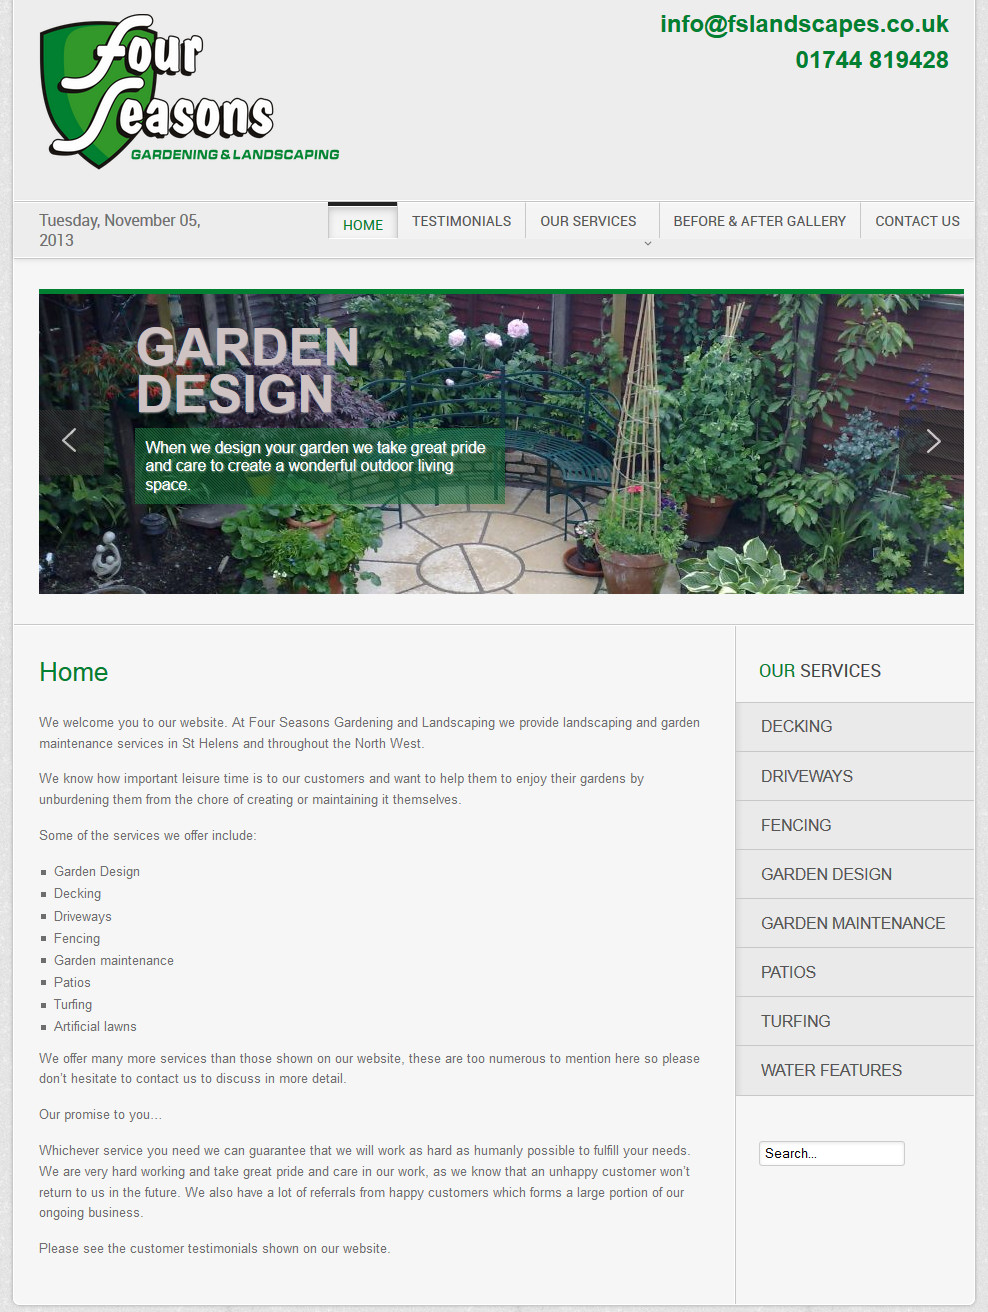 Four Seasons Landscaping and Gardening Design